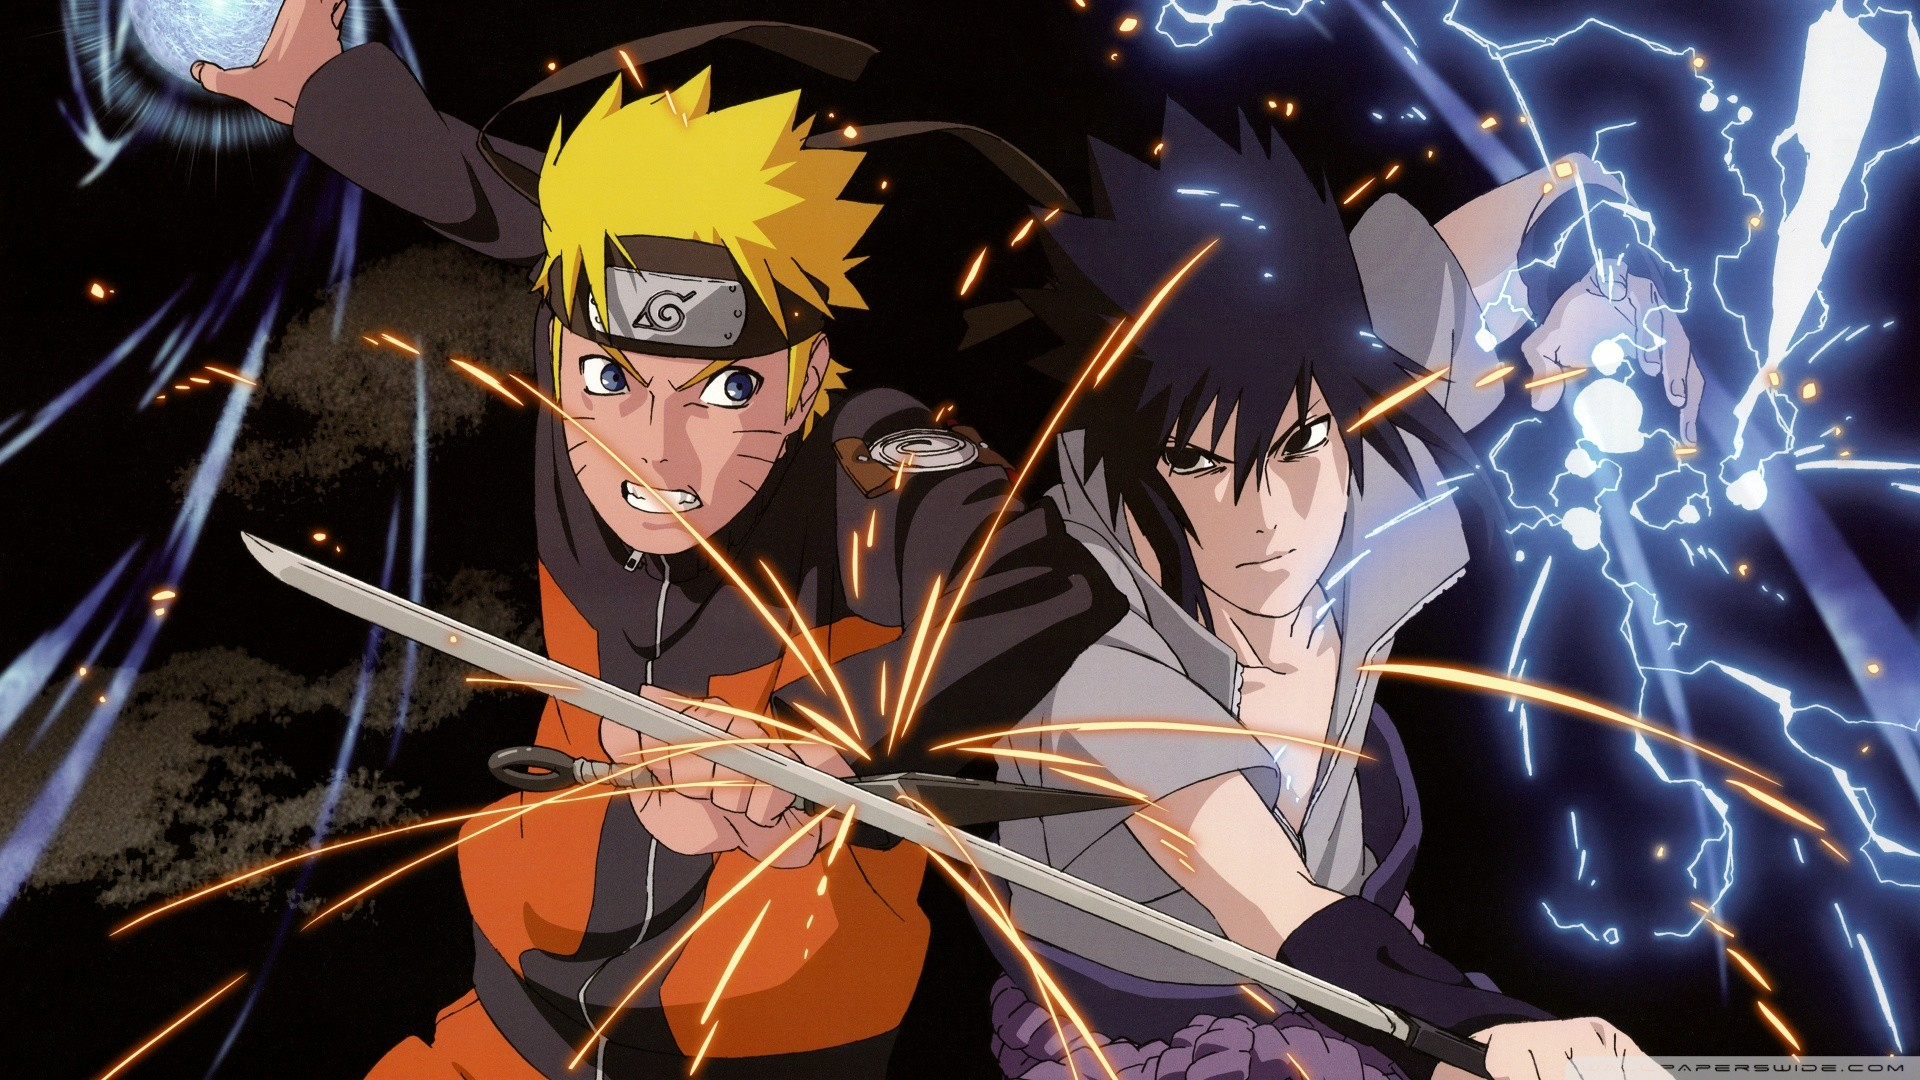 Naruto Vs Sasuke Wallpaper 57 Images